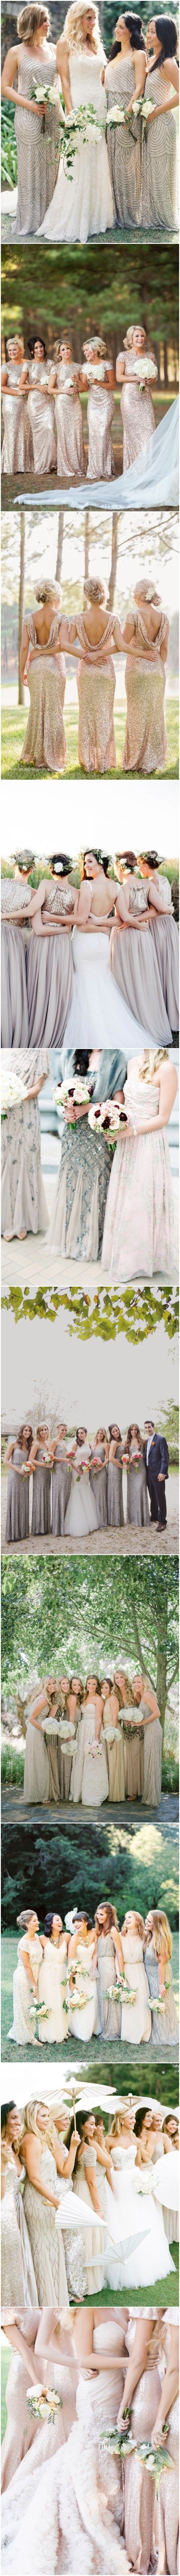 cheap silver jewelry 40  Sequined and Metallic Bridesmaid Dresses   See more at  http   www deerpearlflowers com 2015 wedding trends sequined metallic bridesmaid dresses  sthash w7SGv3DY dpuf